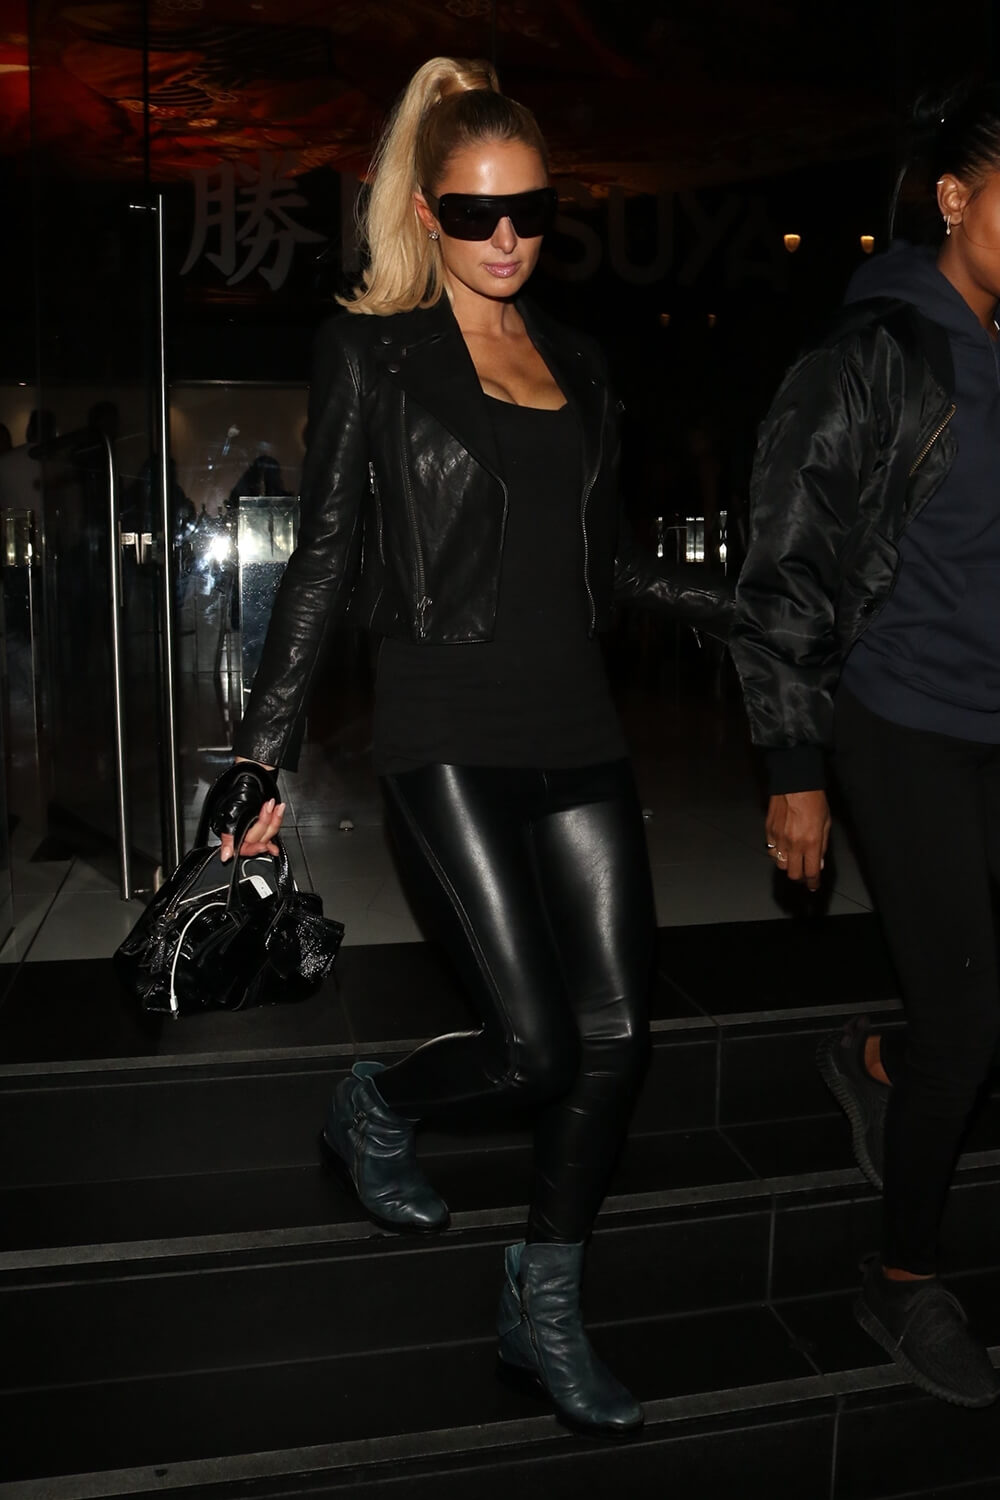 Paris Hilton steps out for a night of fun